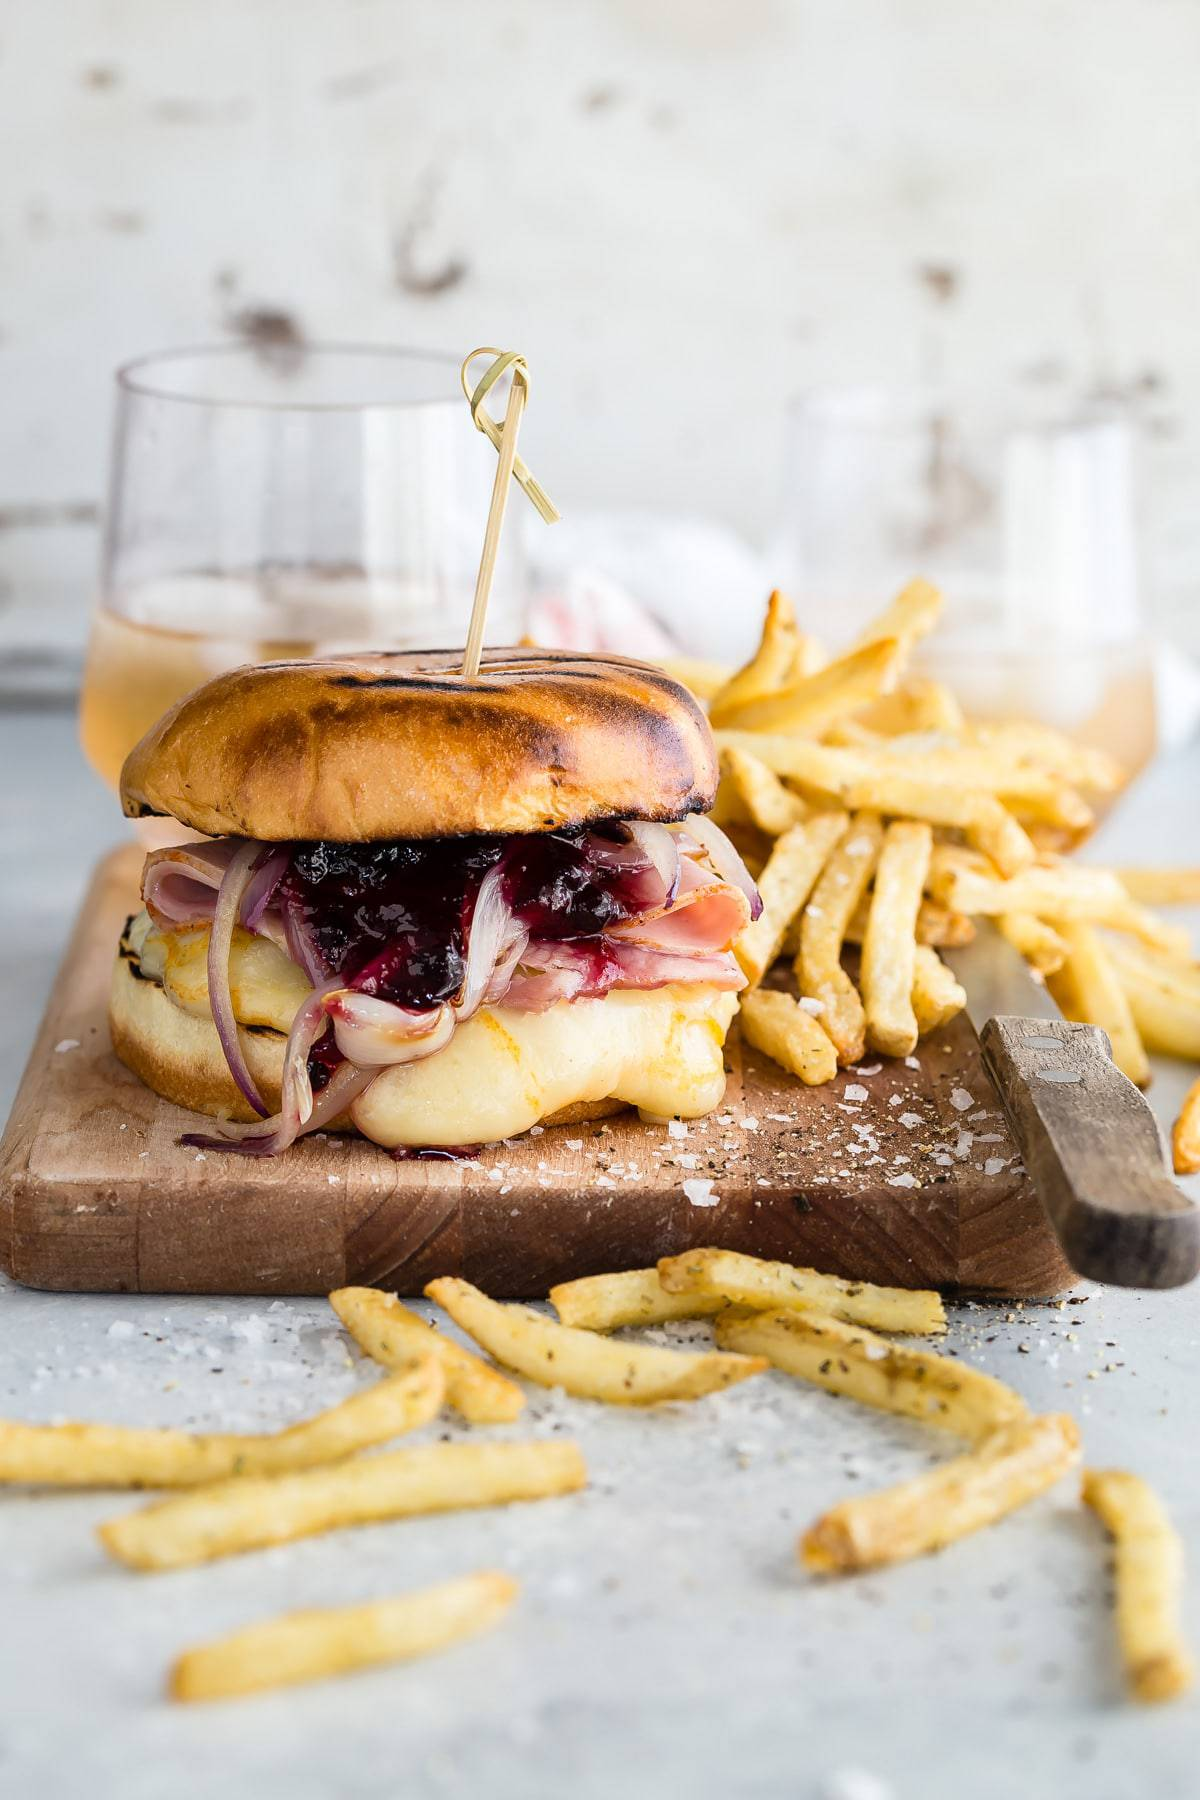 Serve this monte cristo burger with an ice cold beer and crispy french fries!